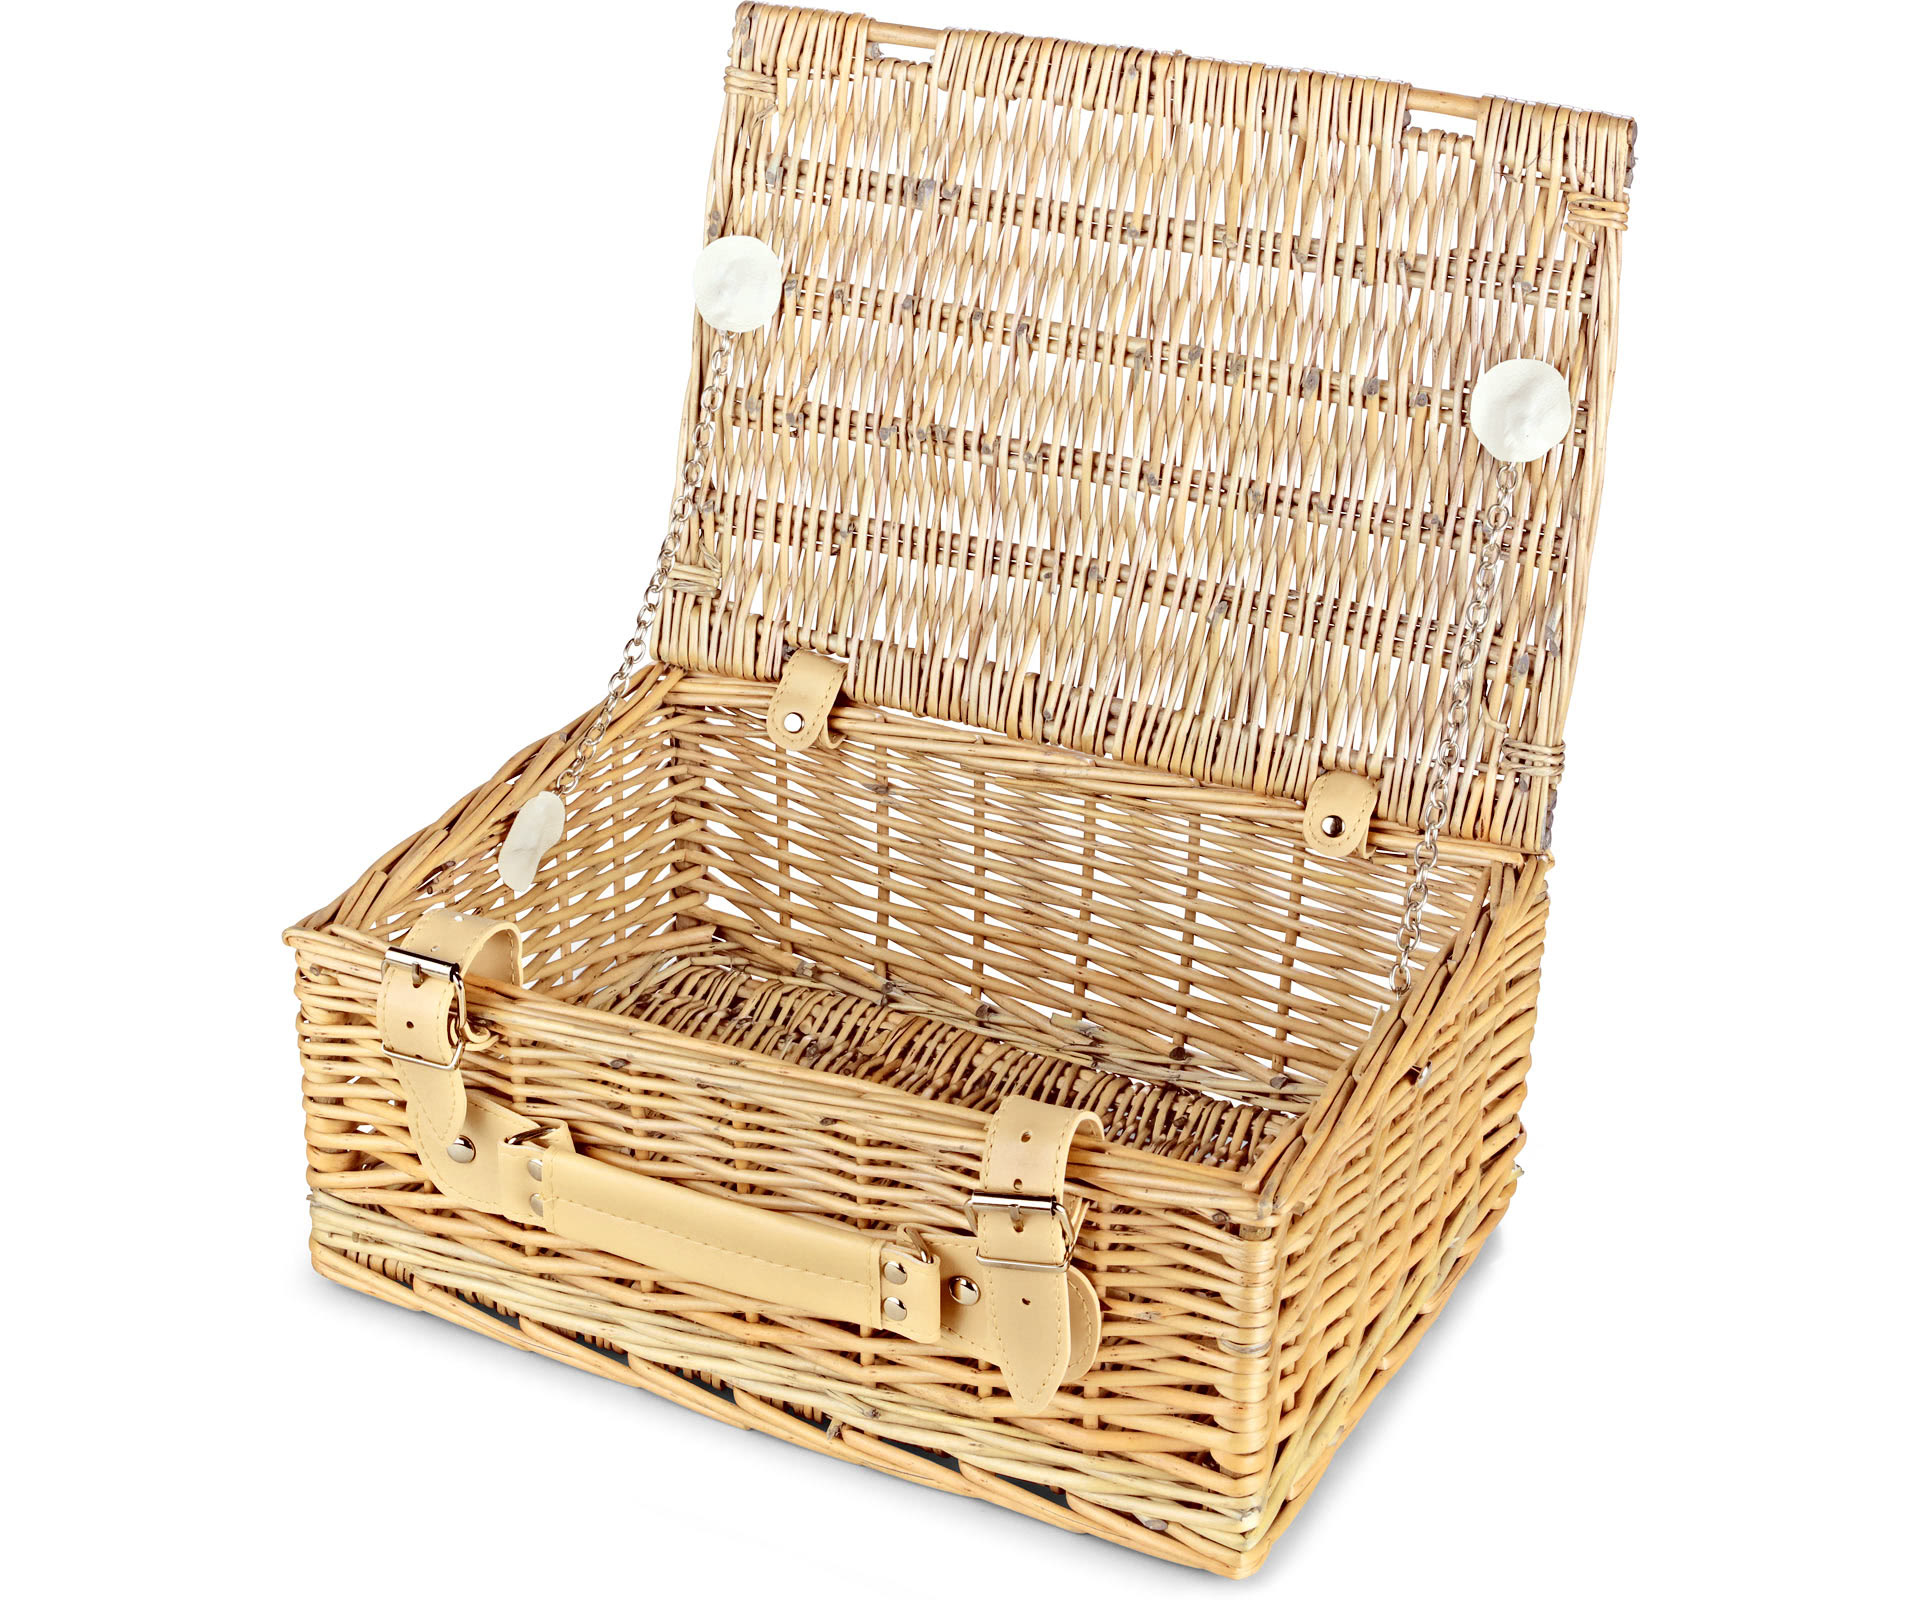 Empty Wicker Gift Baskets : Empty wicker hamper basket lidded standard